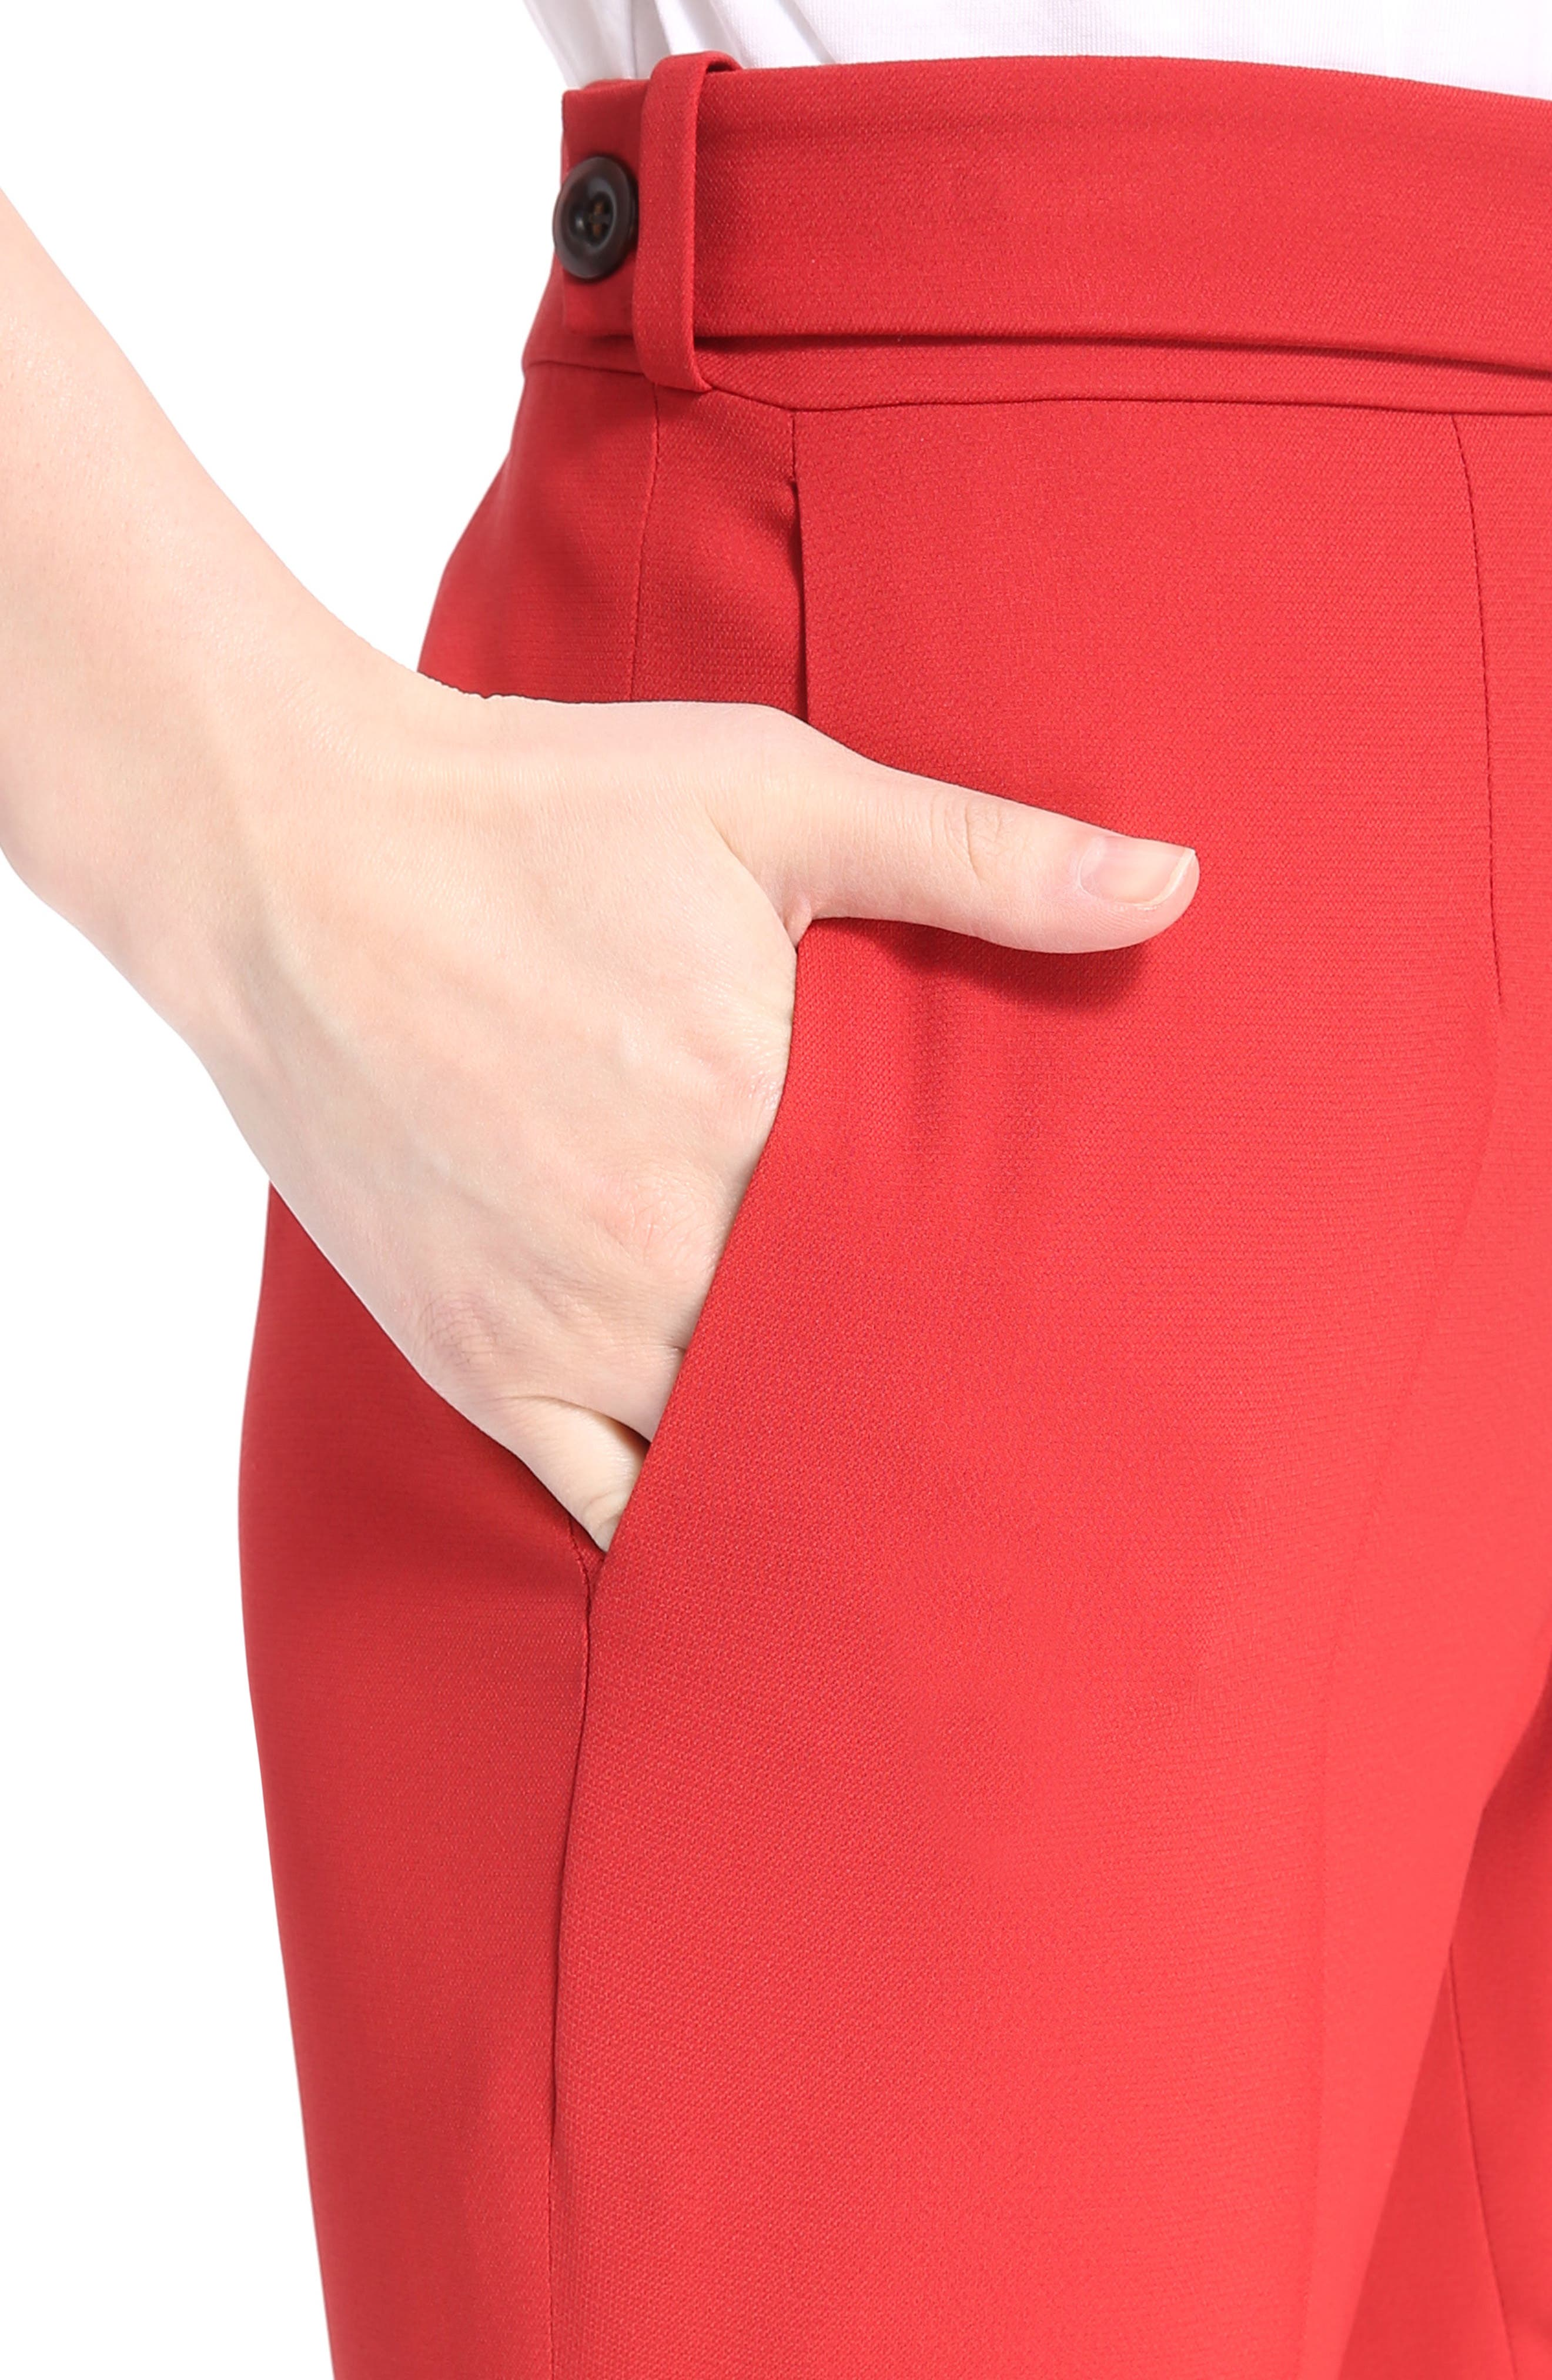 Cady Flare Suiting Pants,                             Alternate thumbnail 4, color,                             610